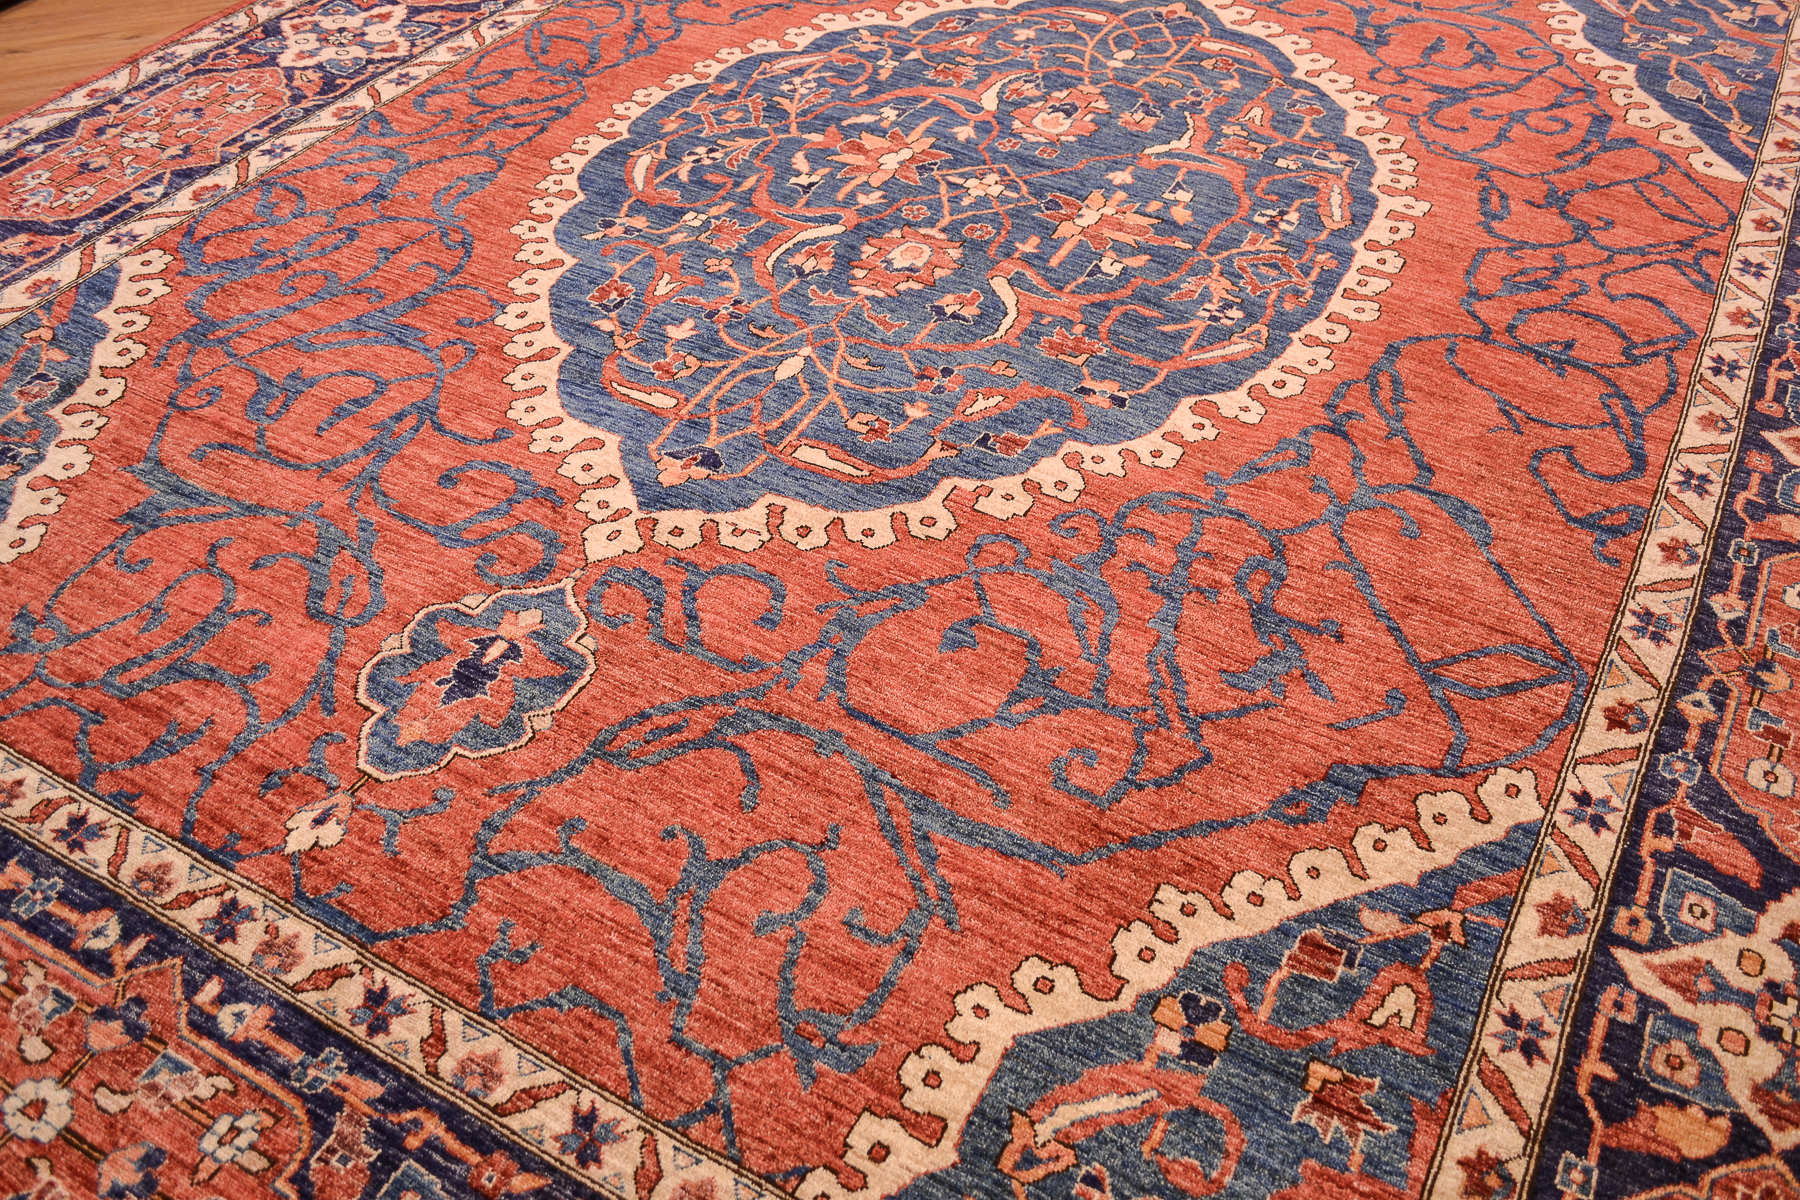 Fine Afghan Aryana Carpet 3 58x2 79m The Oriental Rug